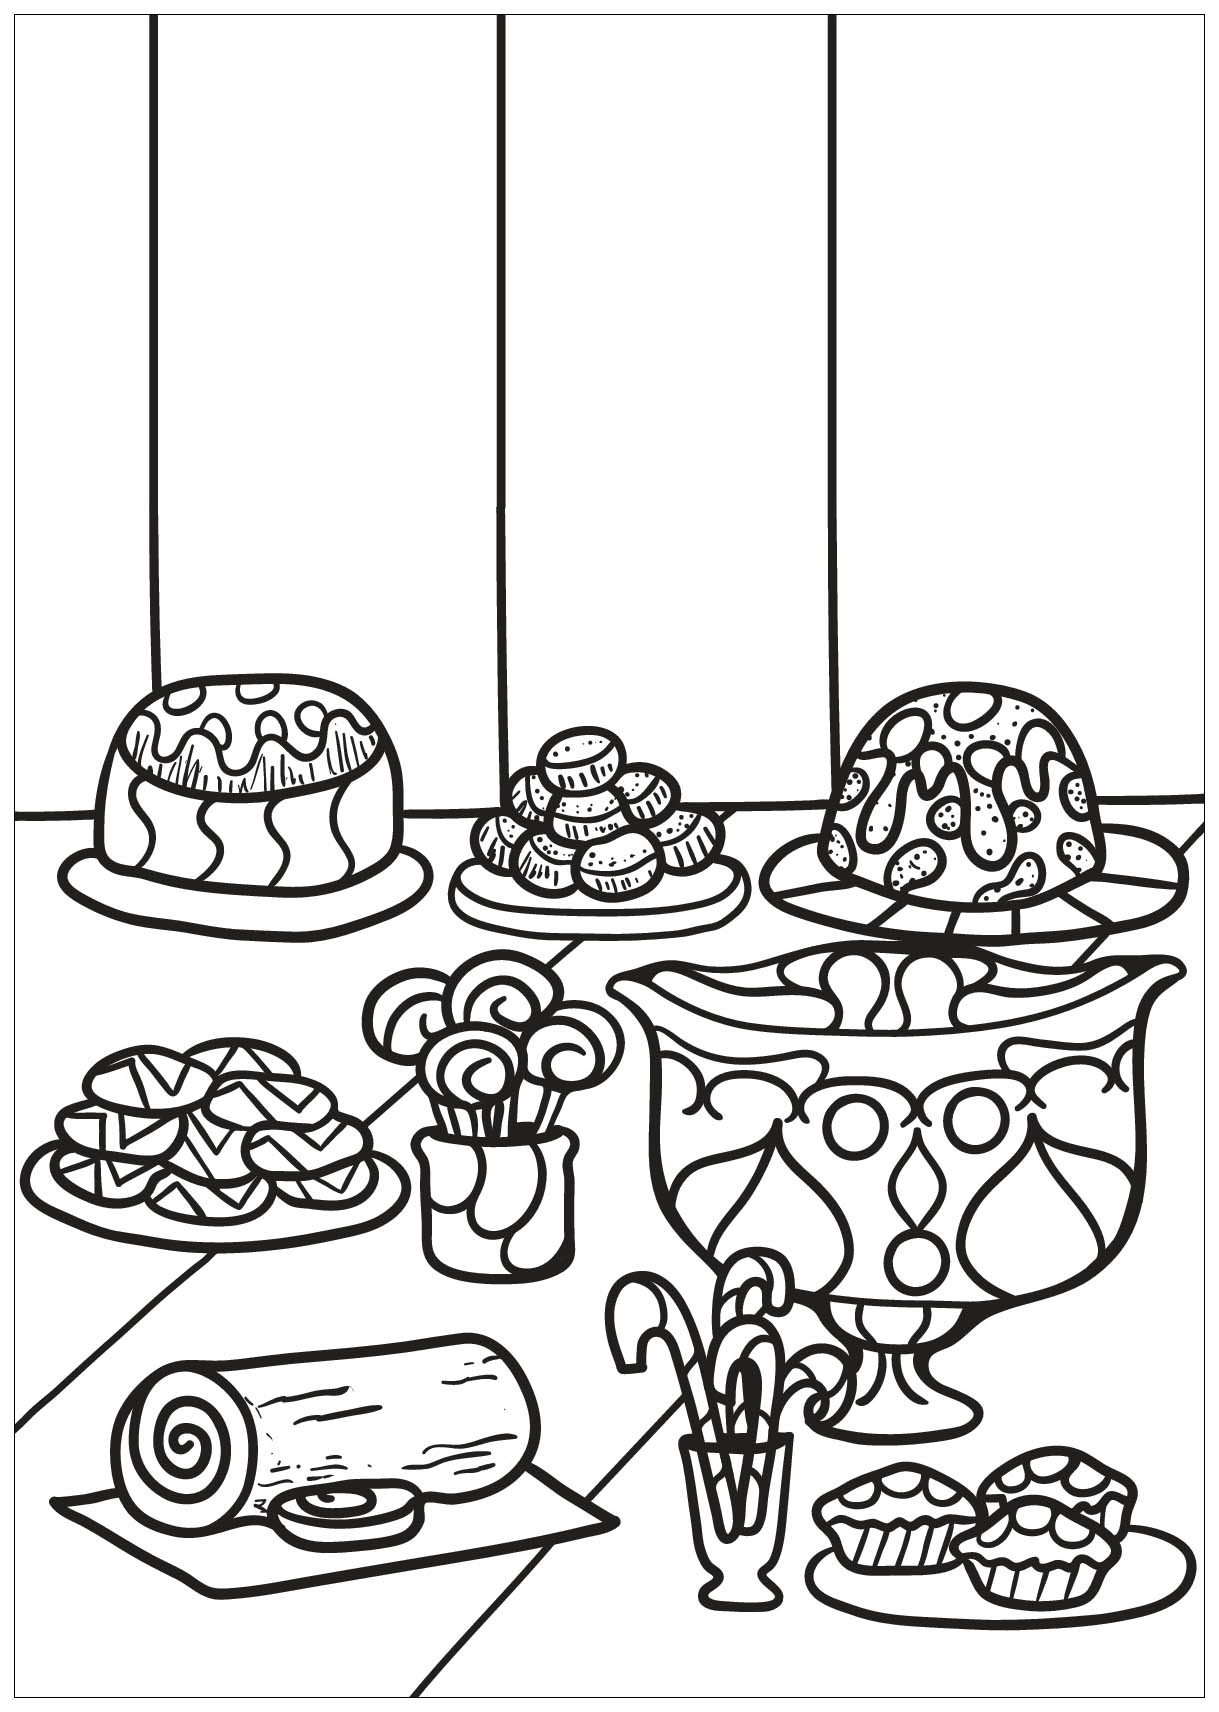 Cupcakes And Cakes coloring page with few details for kids